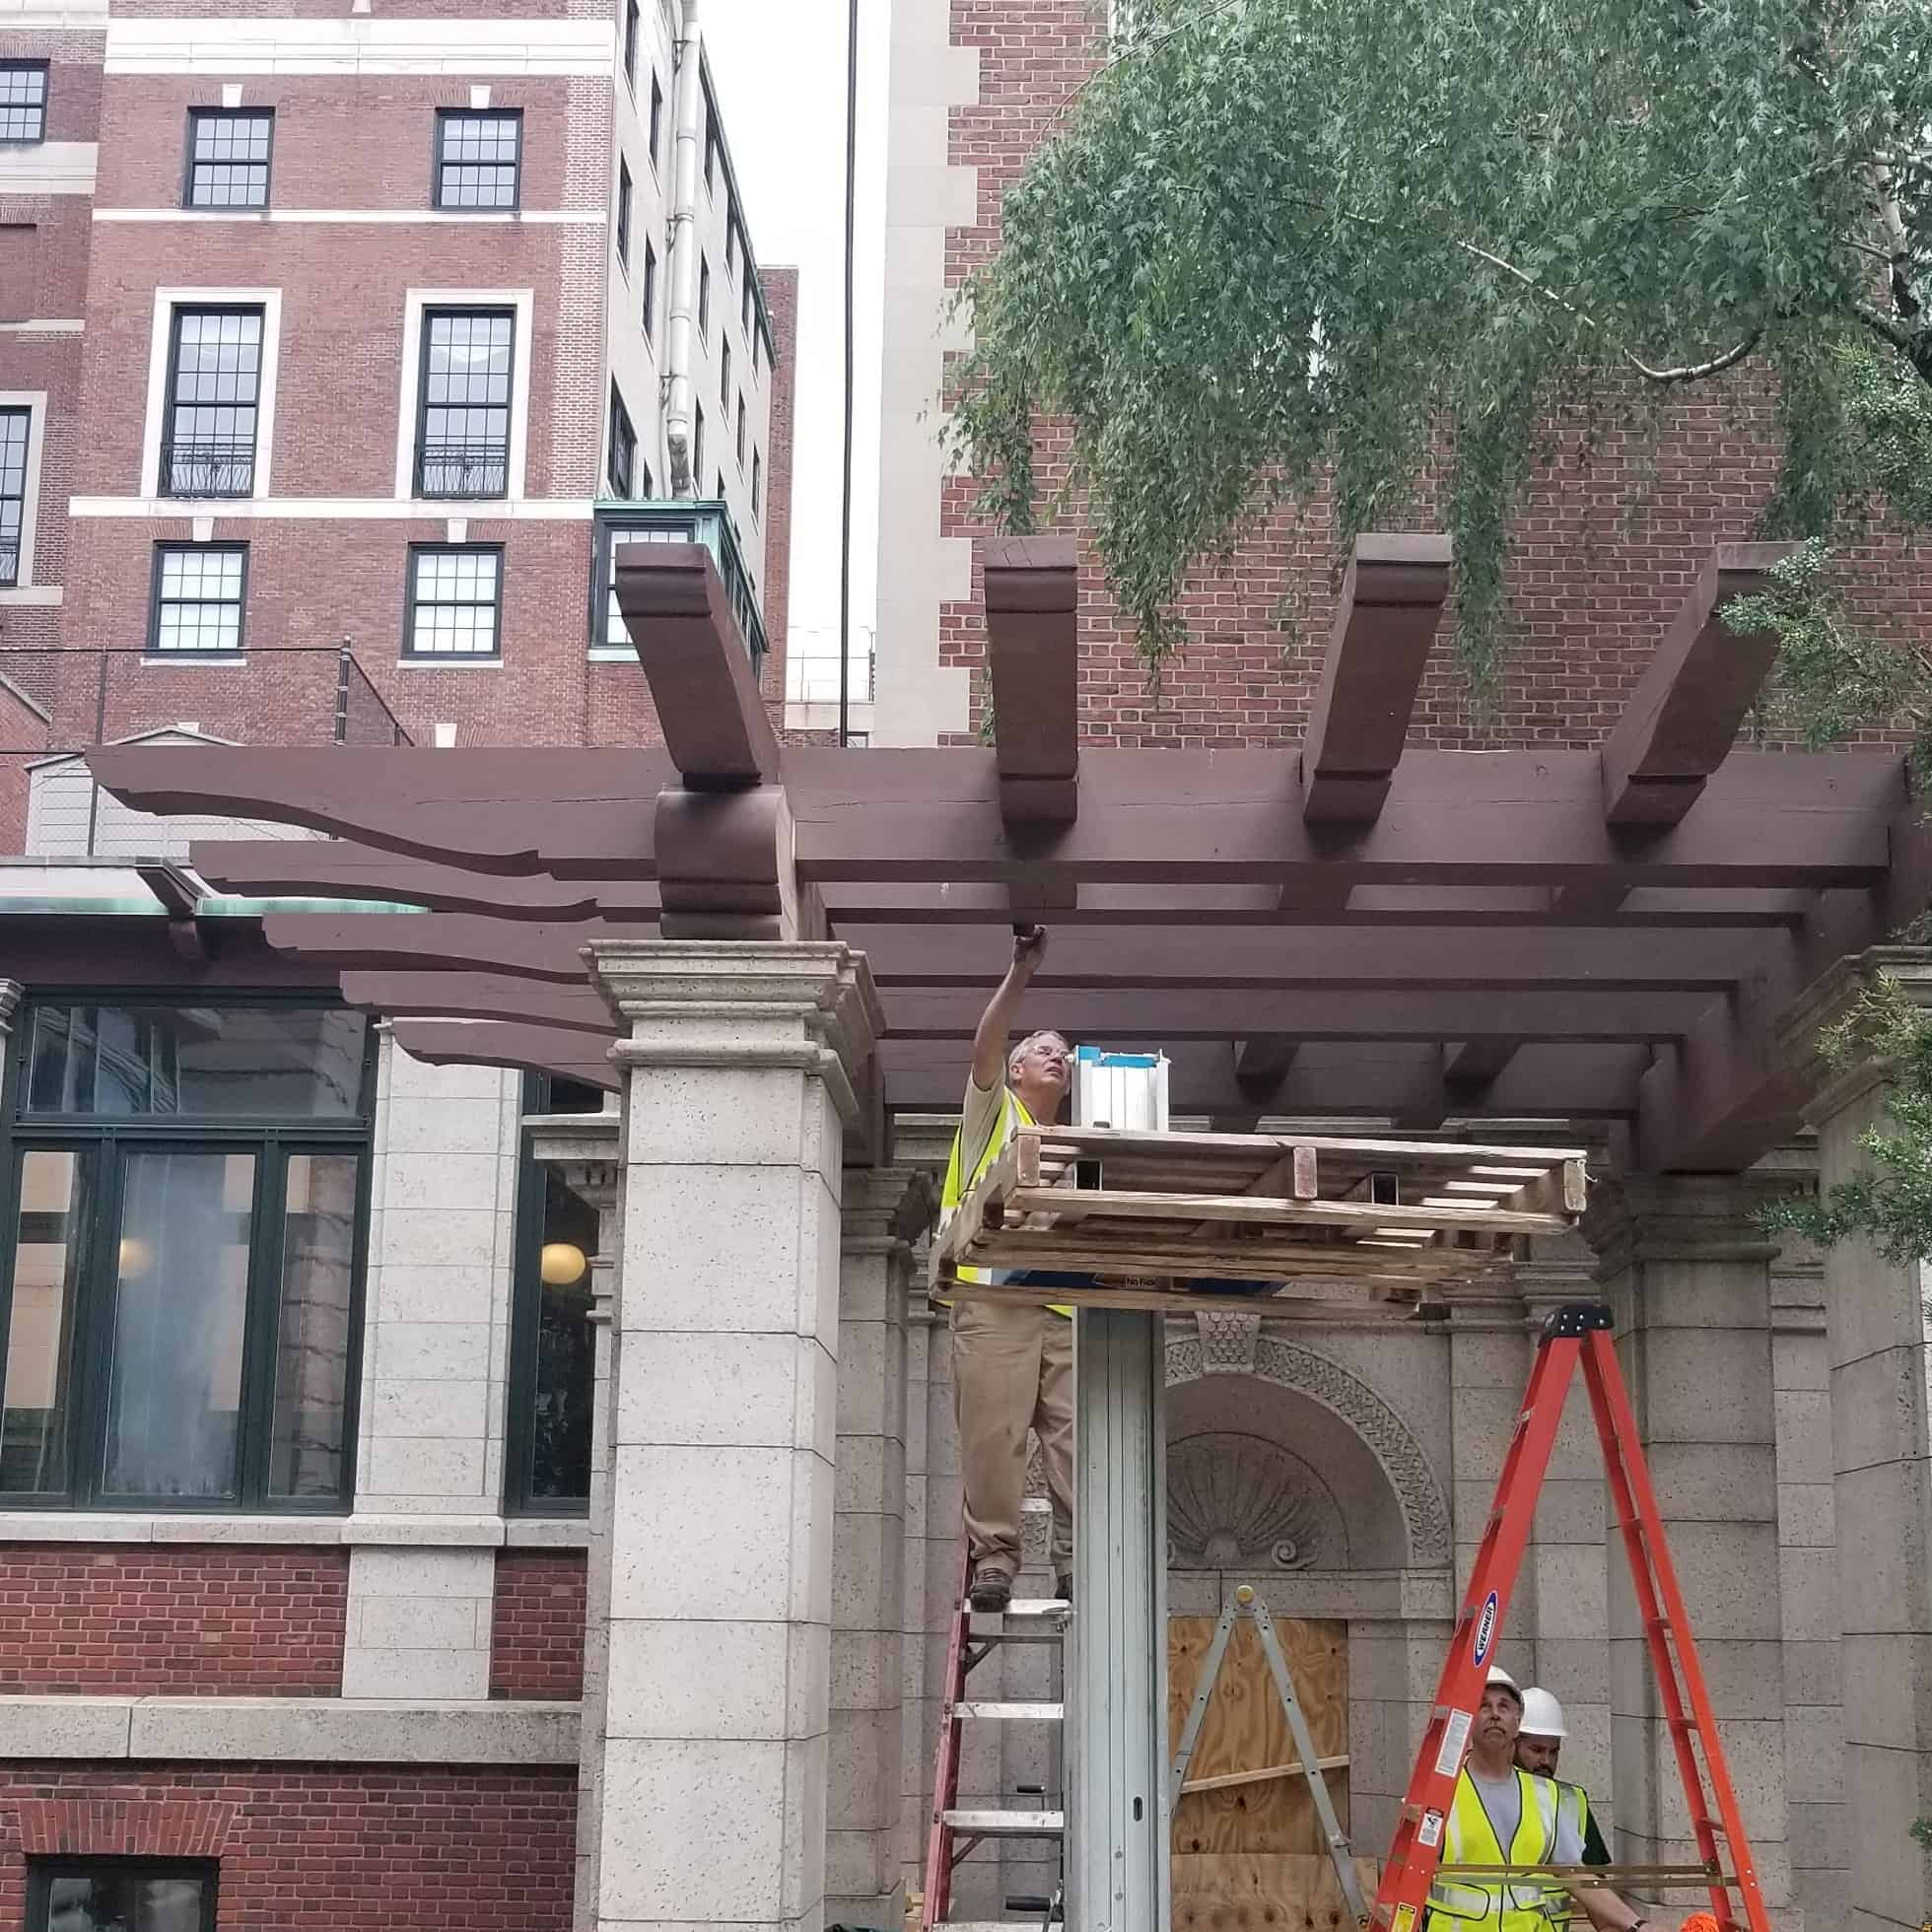 Western Red Cedar Reclaimed Telephone Poles as Pergola at Smithsonian